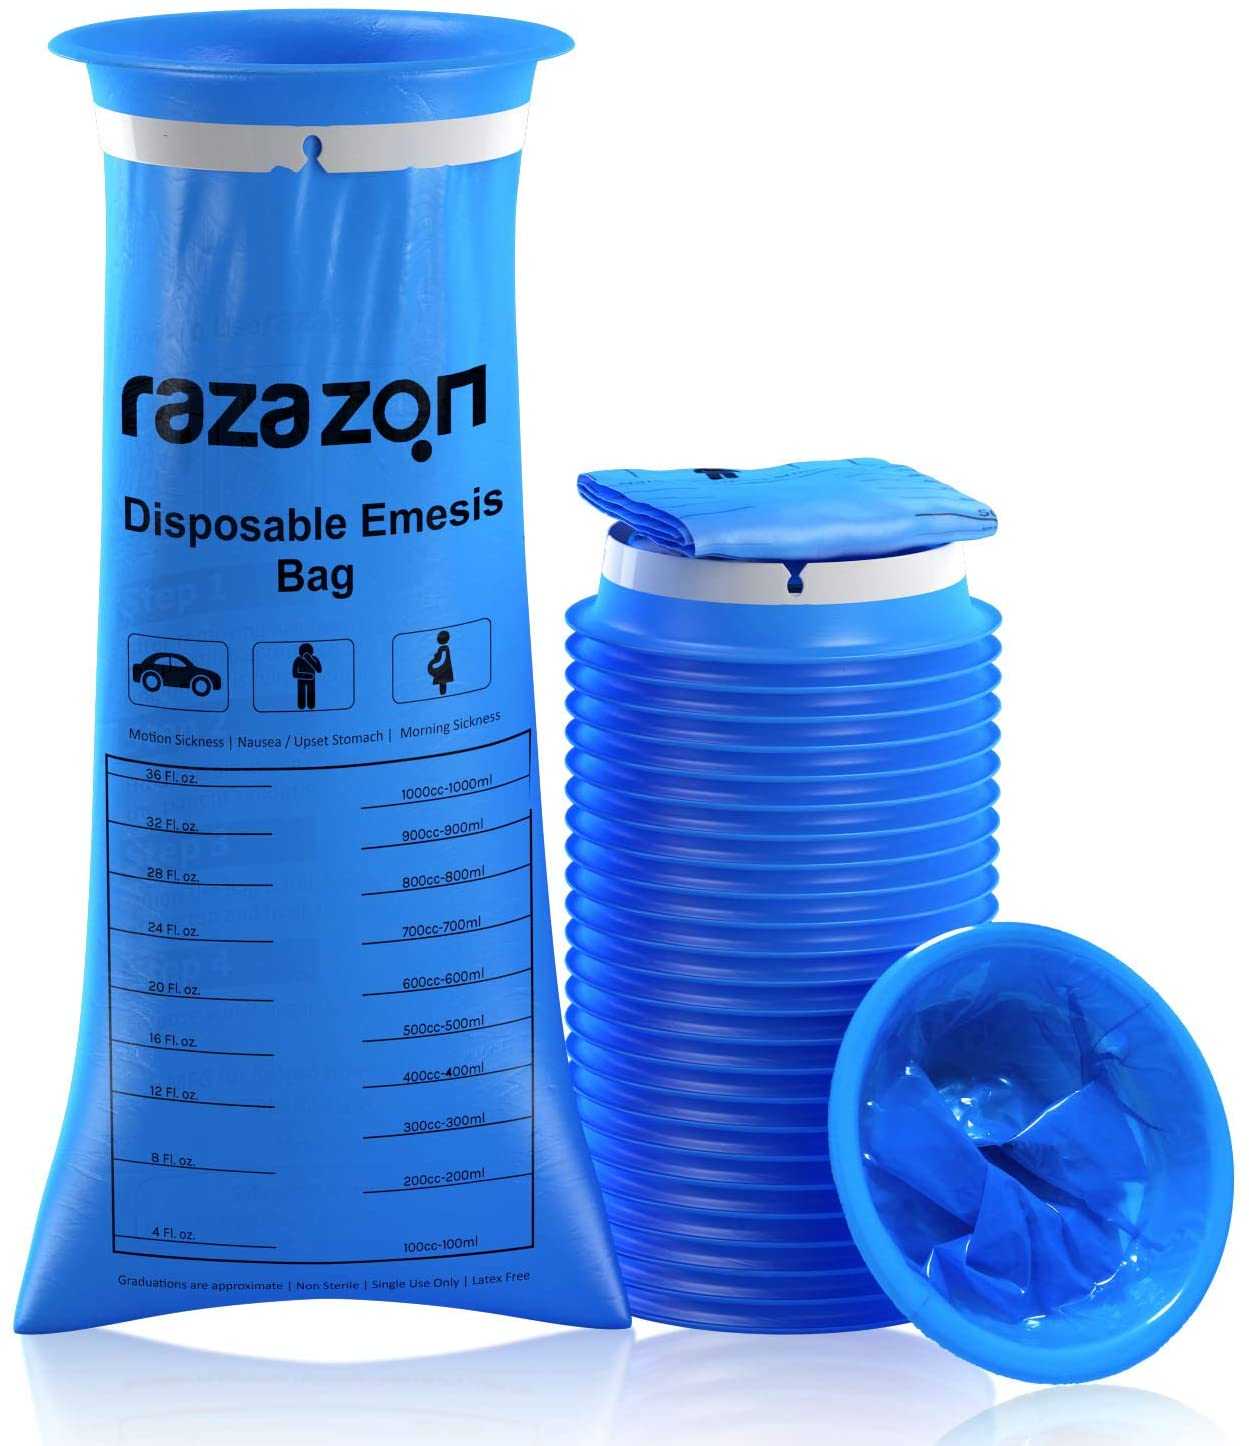 RAZAZON Emesis Vomit Bags Disposable - Pack of 24 - Motion Sickness & Nausea Bags for Kids & Drivers, Morning Sickness Barf Bags (24)